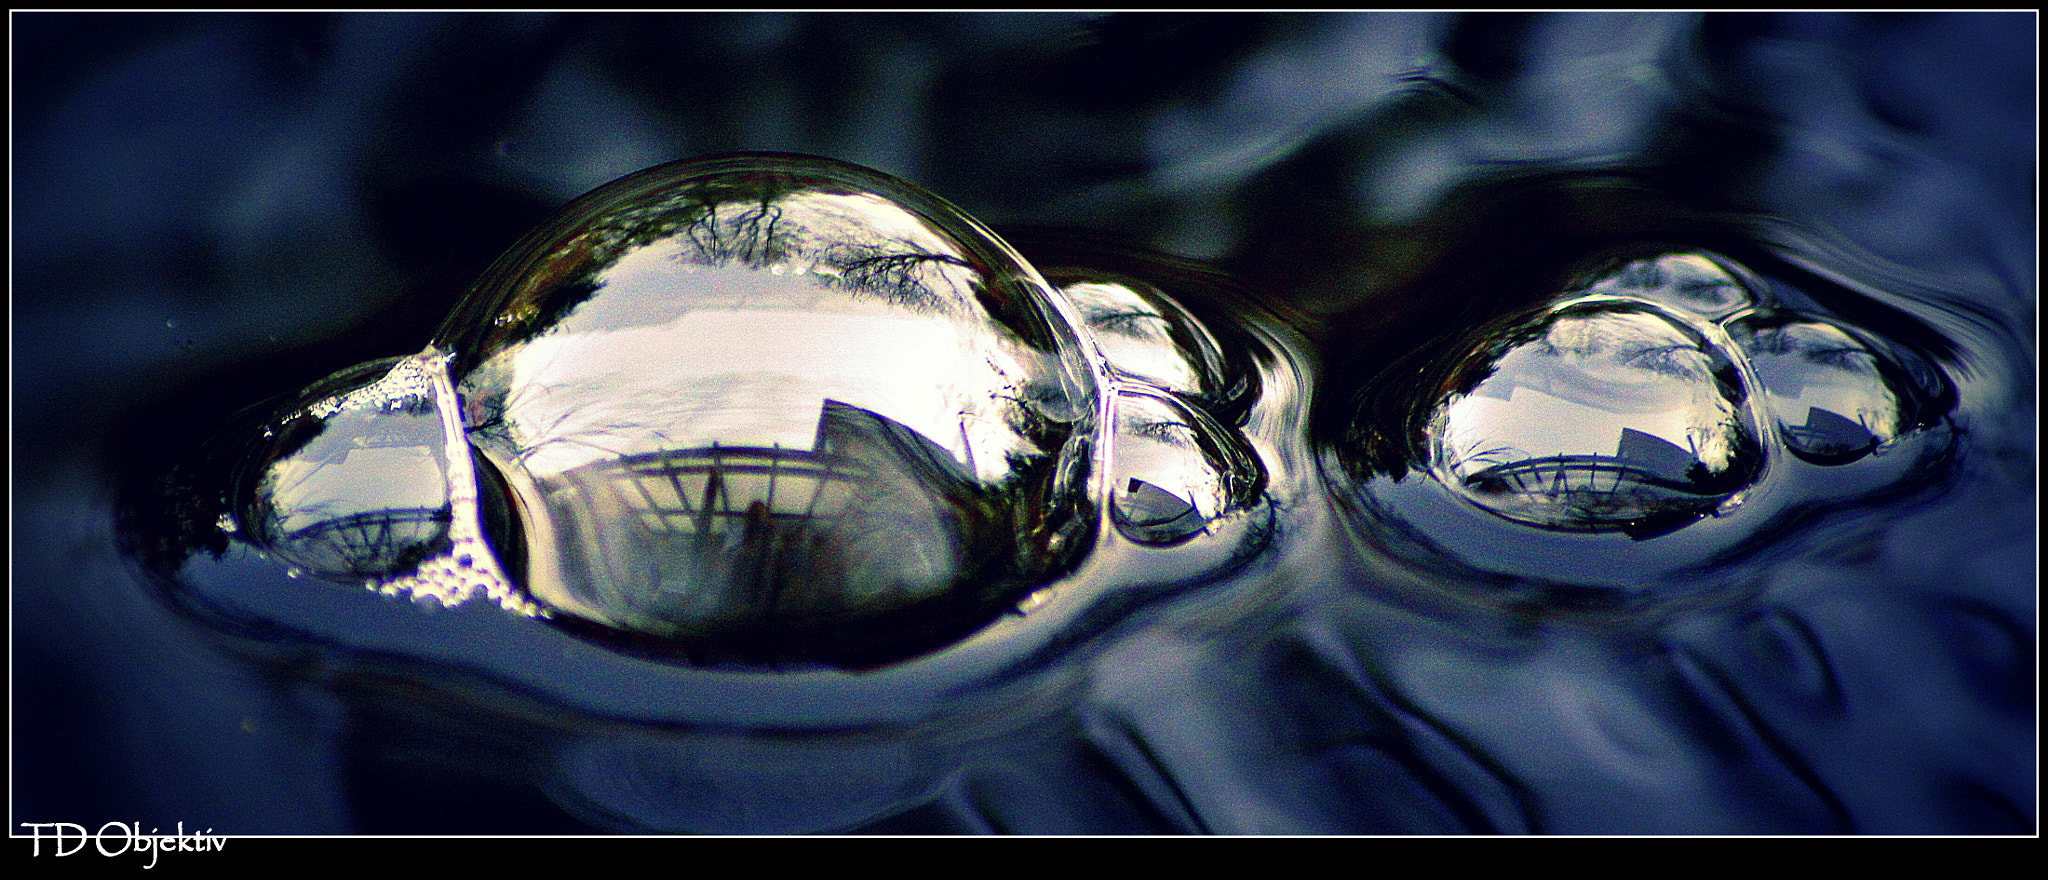 Photograph bubbles by Tasja Moelans on 500px